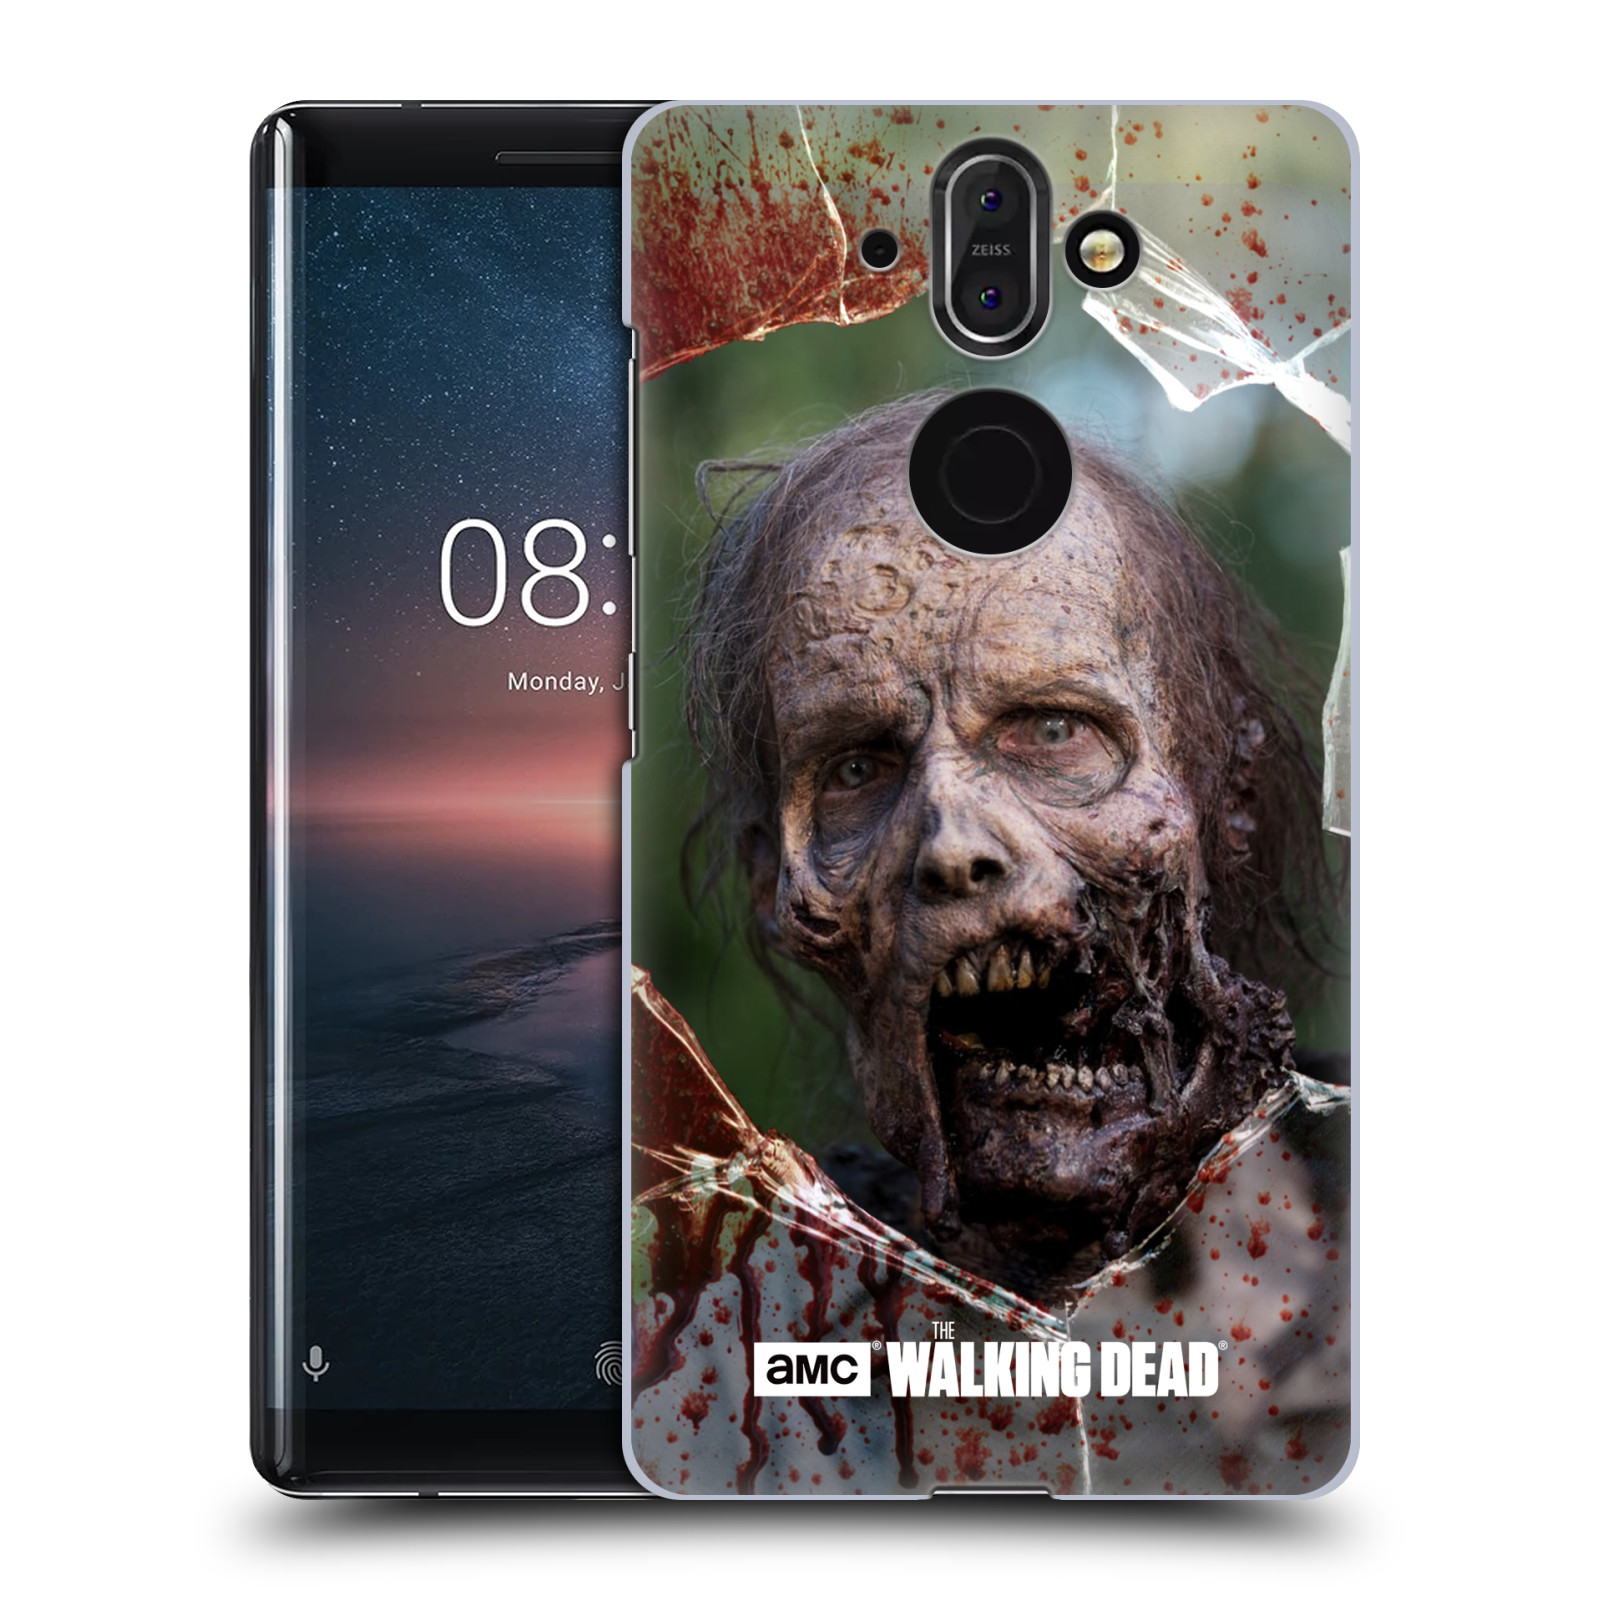 Plastové pouzdro na mobil Nokia 8 Sirocco - Head Case - The Walking Dead - Walkers Jaw